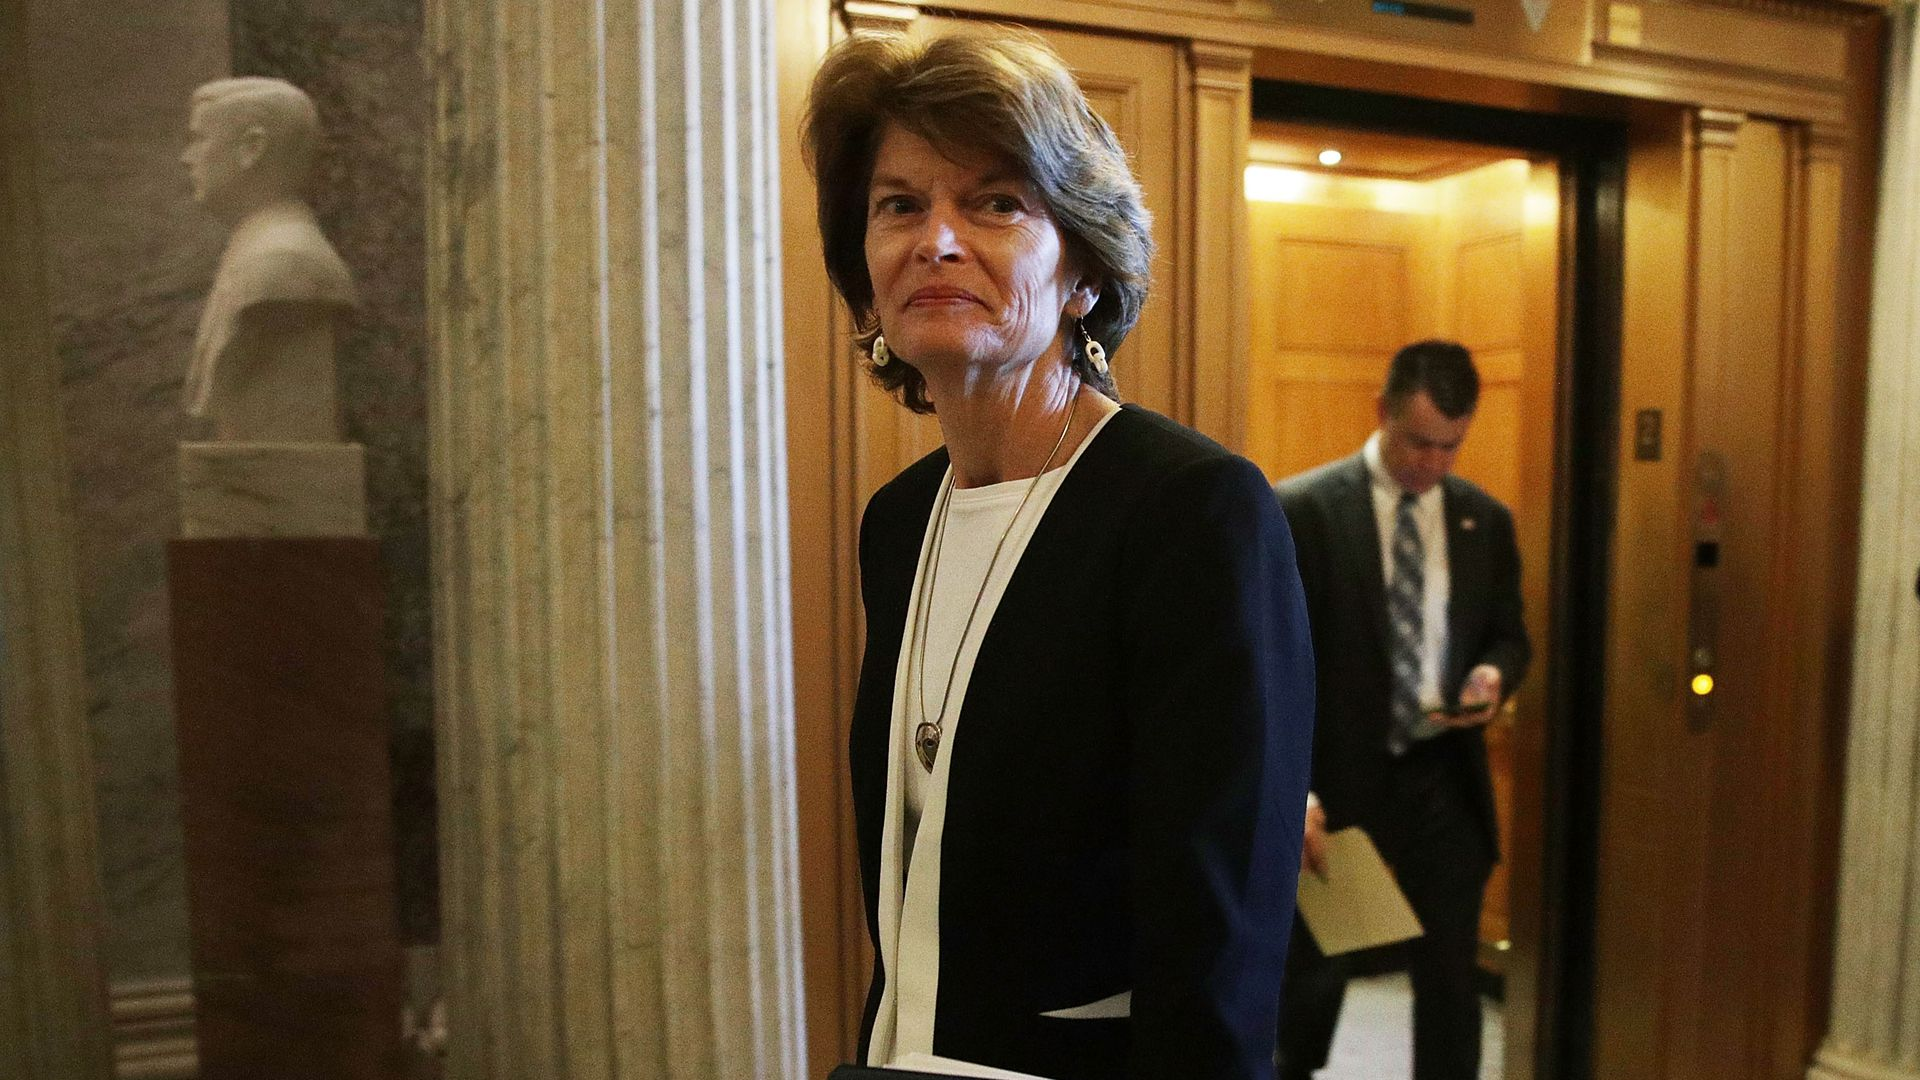 Sen. Lisa Murkowski walks into Capitol Building